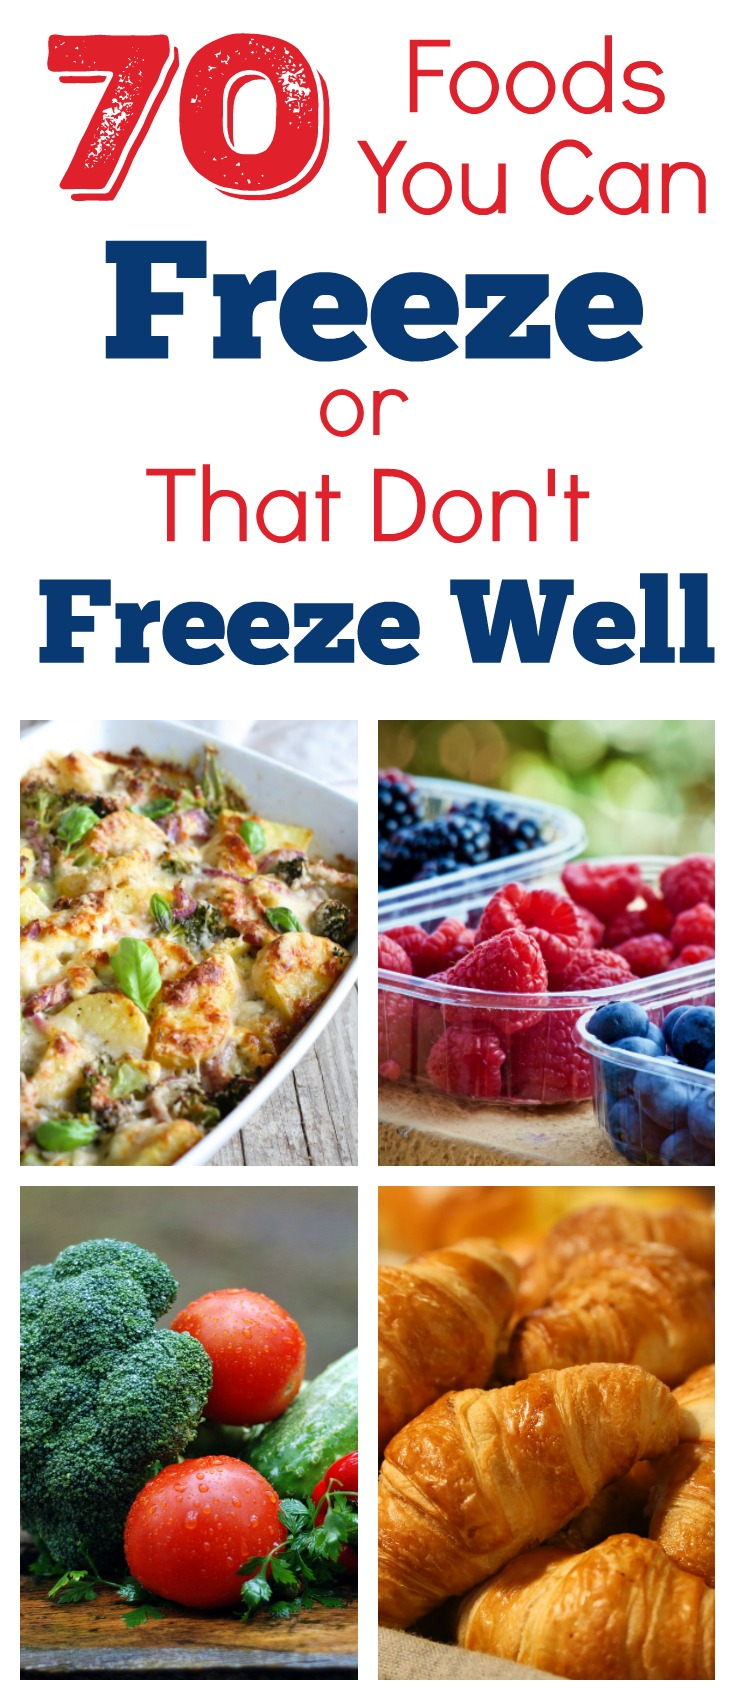 70 foods you can freeze or that don't freeze well